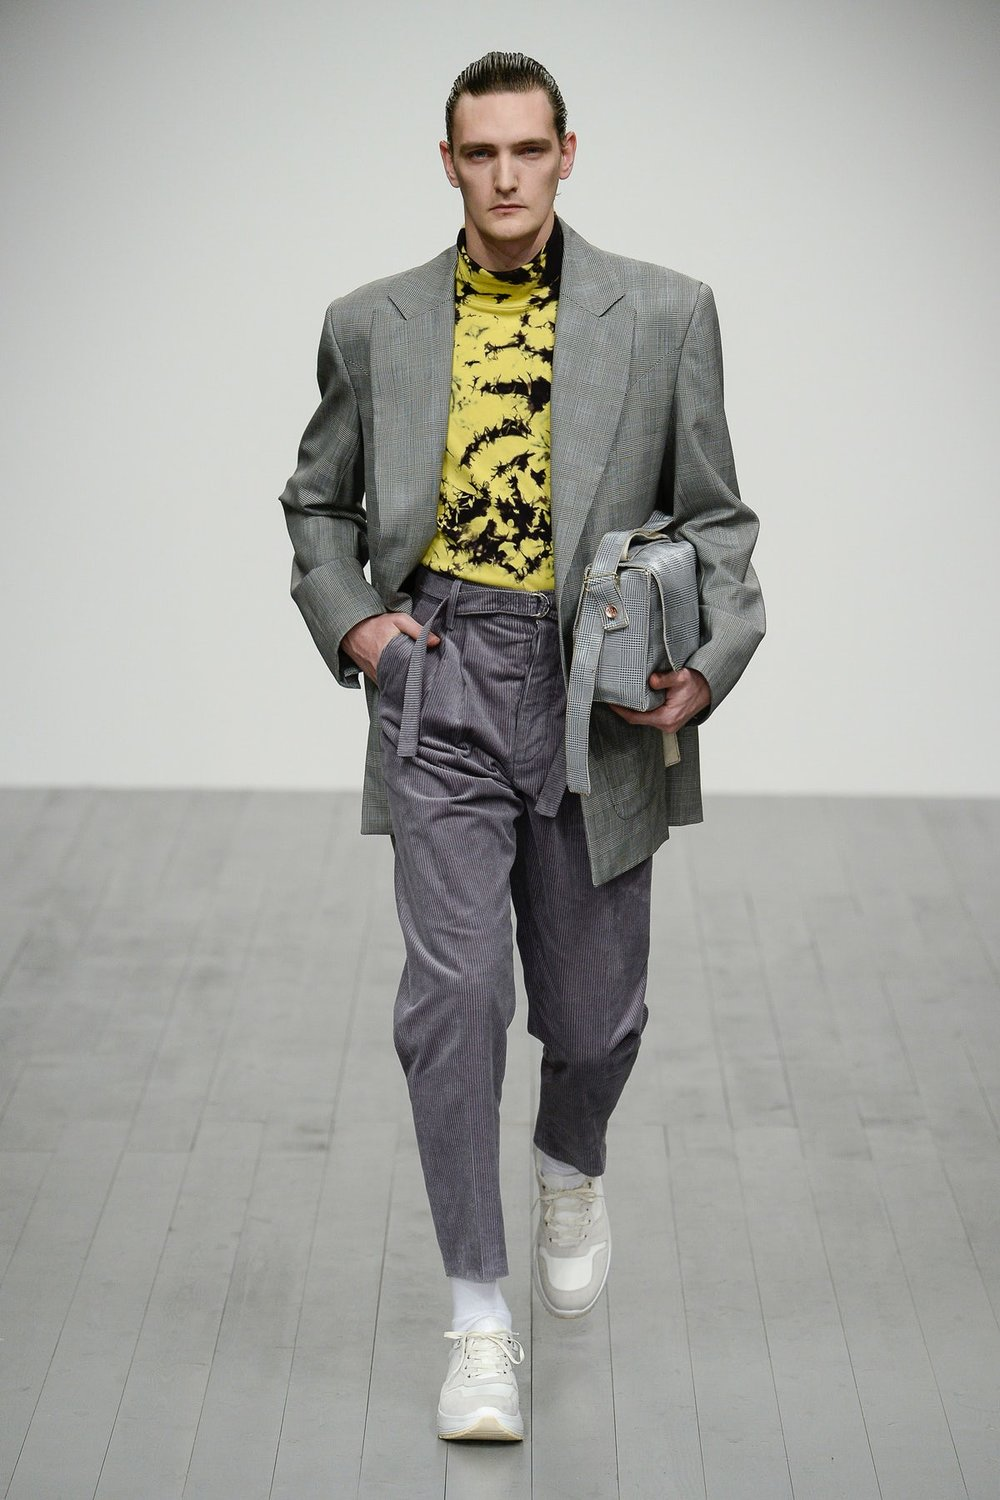 alex_mullins_look_2_menswear_autumn_2018.jpeg